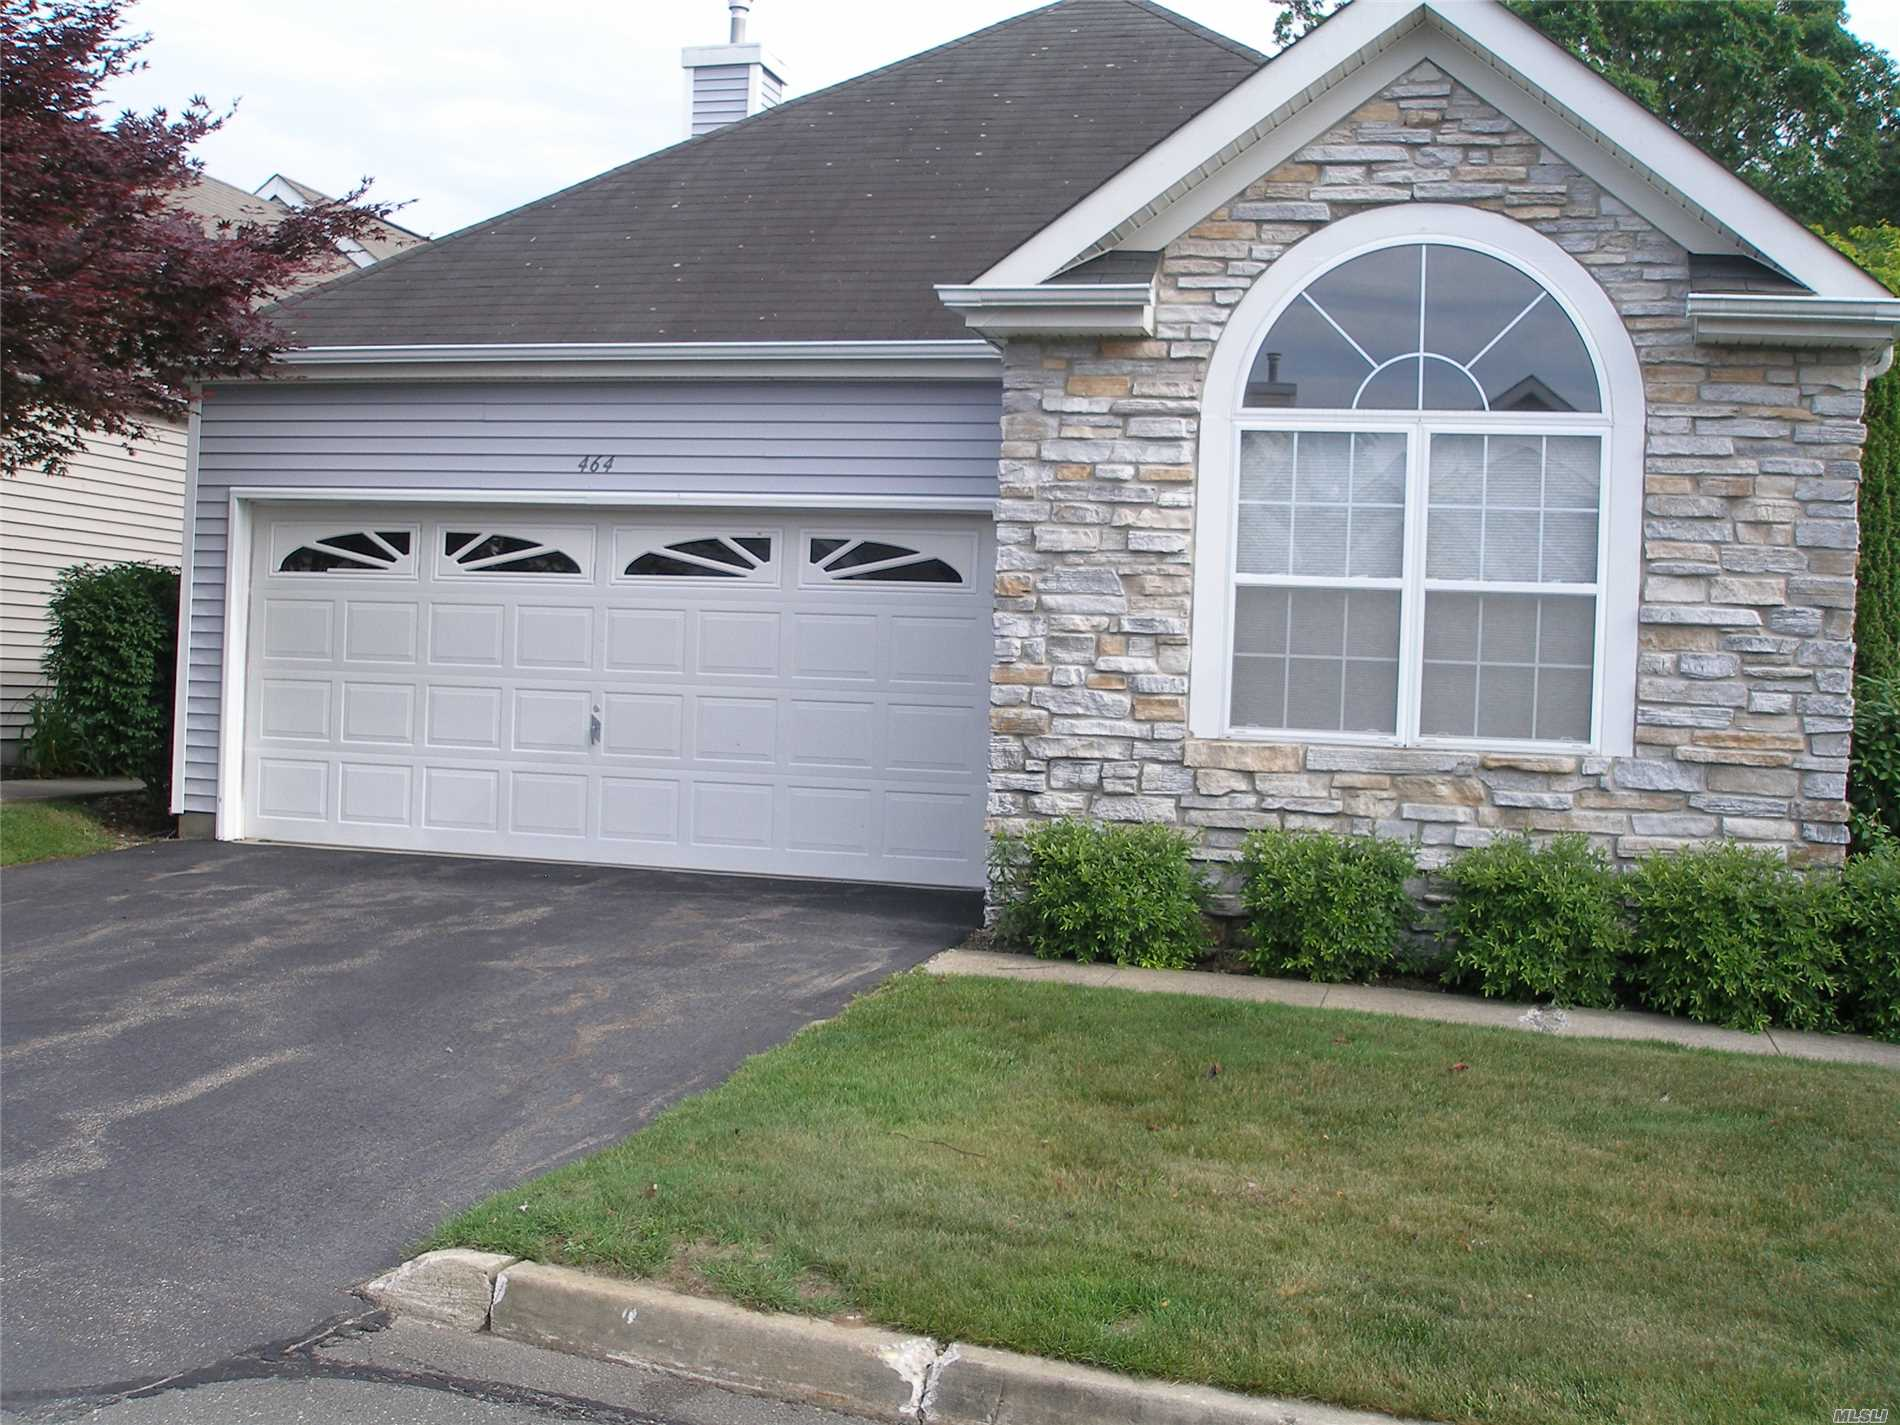 Expanded Maidstone .In 55+ Leisure Glen.This 2 Br, 2 Ba Beauty Is Situated On A Large Plot With Wrap Around Patio With Pavers. Wood Floors, Fireplace ..... Move Right In And Enjoy The Amenities Of This Beautiful Community: Ig Pool, Clubhouse With Auditorium, Exercise Rooms, Library, Ceramics, And More. Clubs Galore.